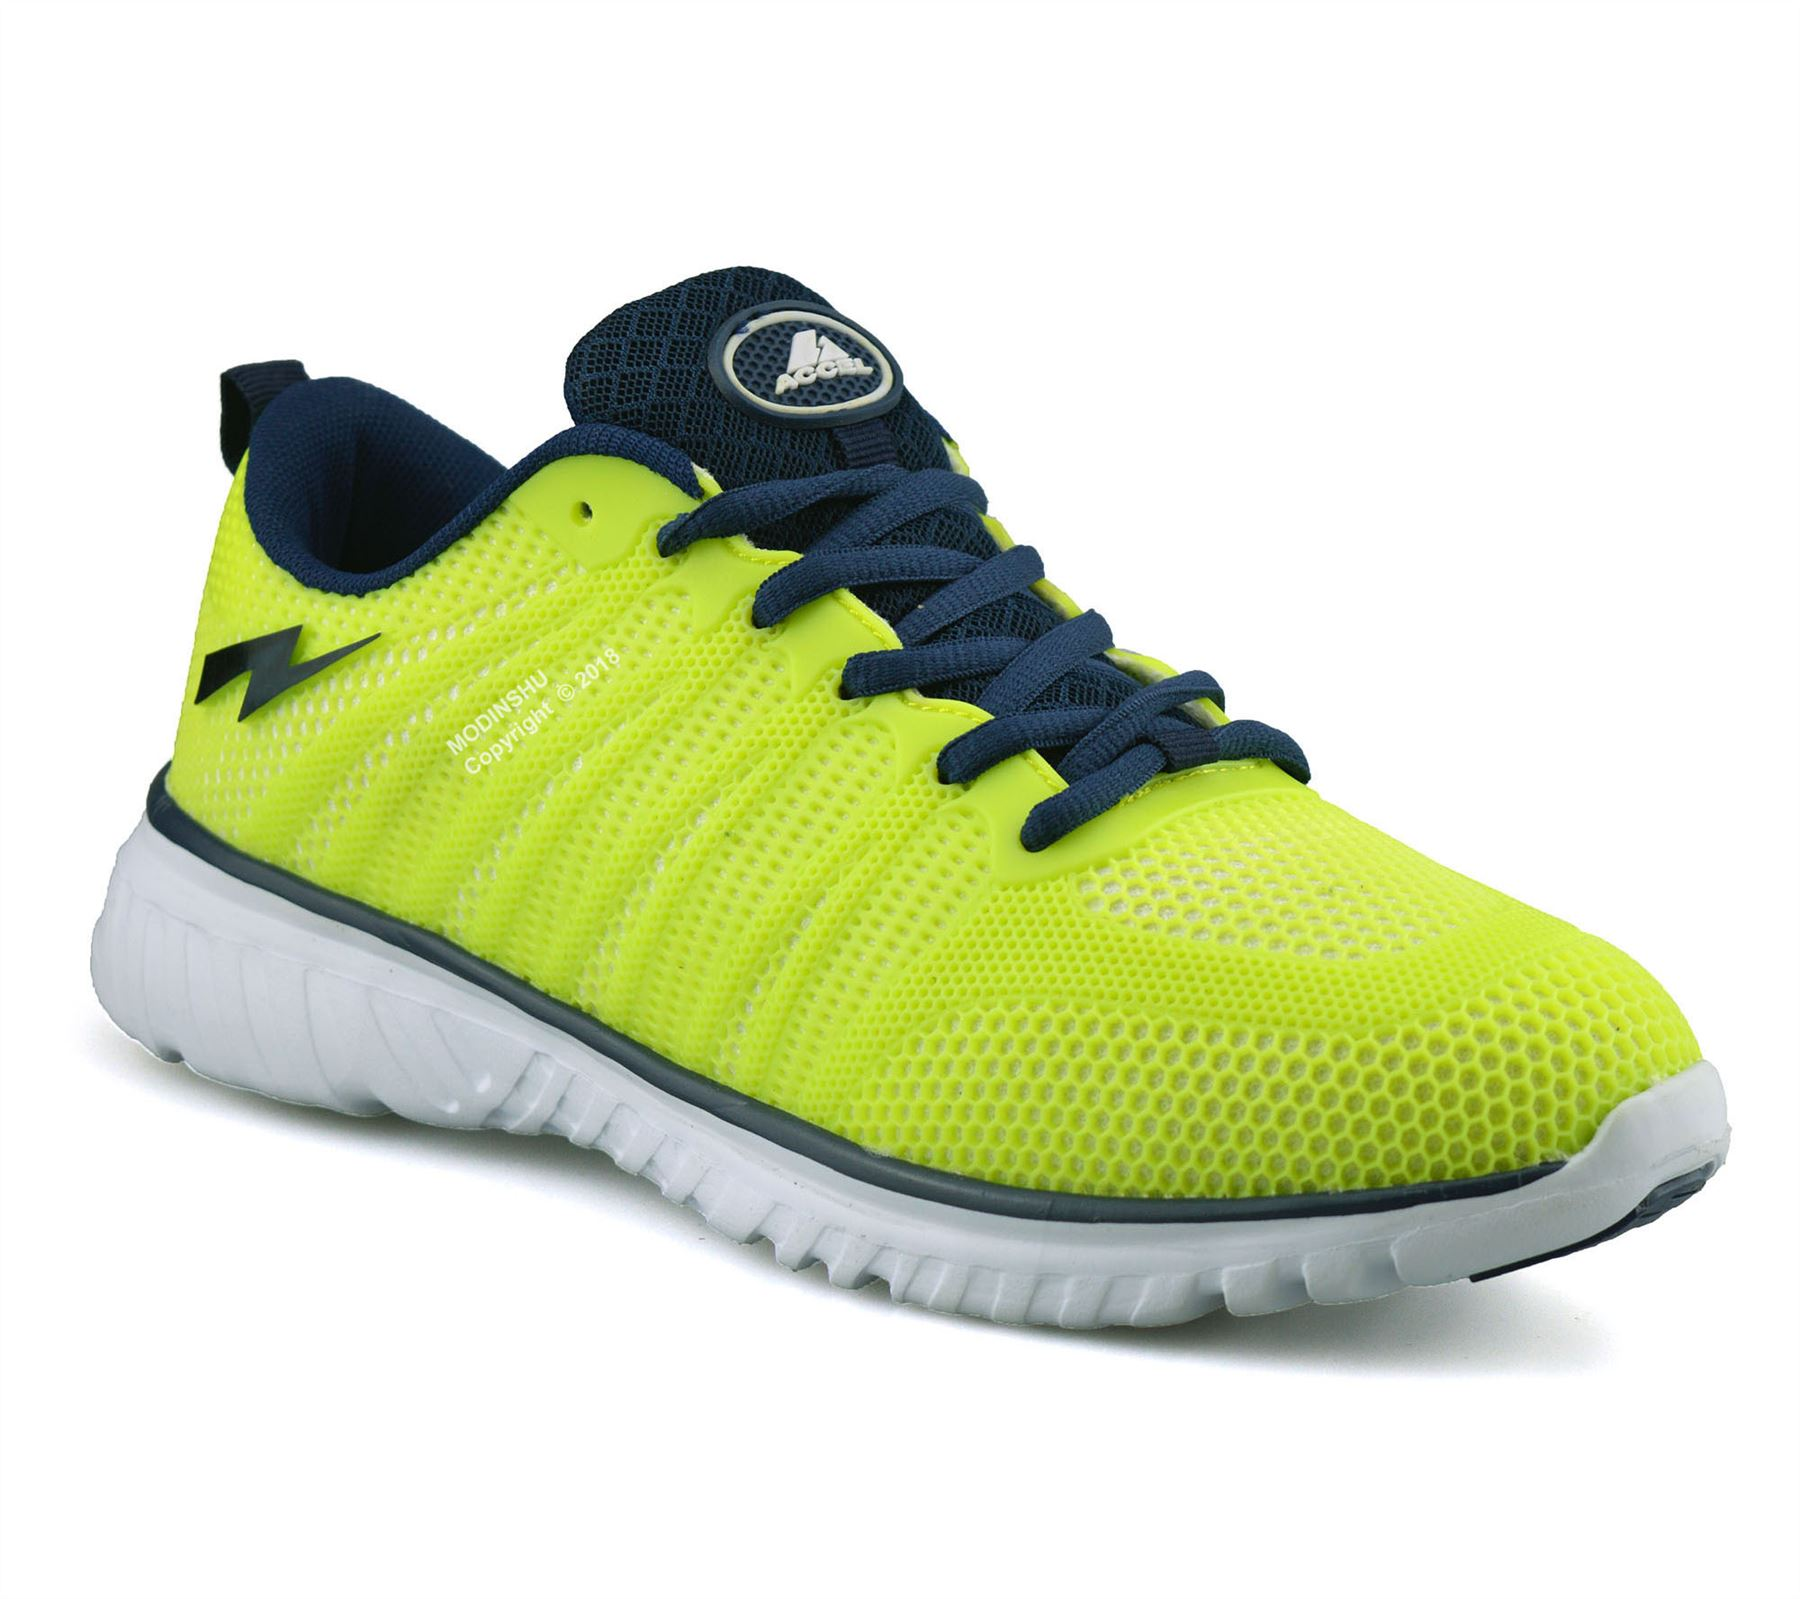 Mens-Casual-Running-Walking-Sports-Gym-Shock-Absorbing-Lace-Trainers-Shoes-Size thumbnail 19